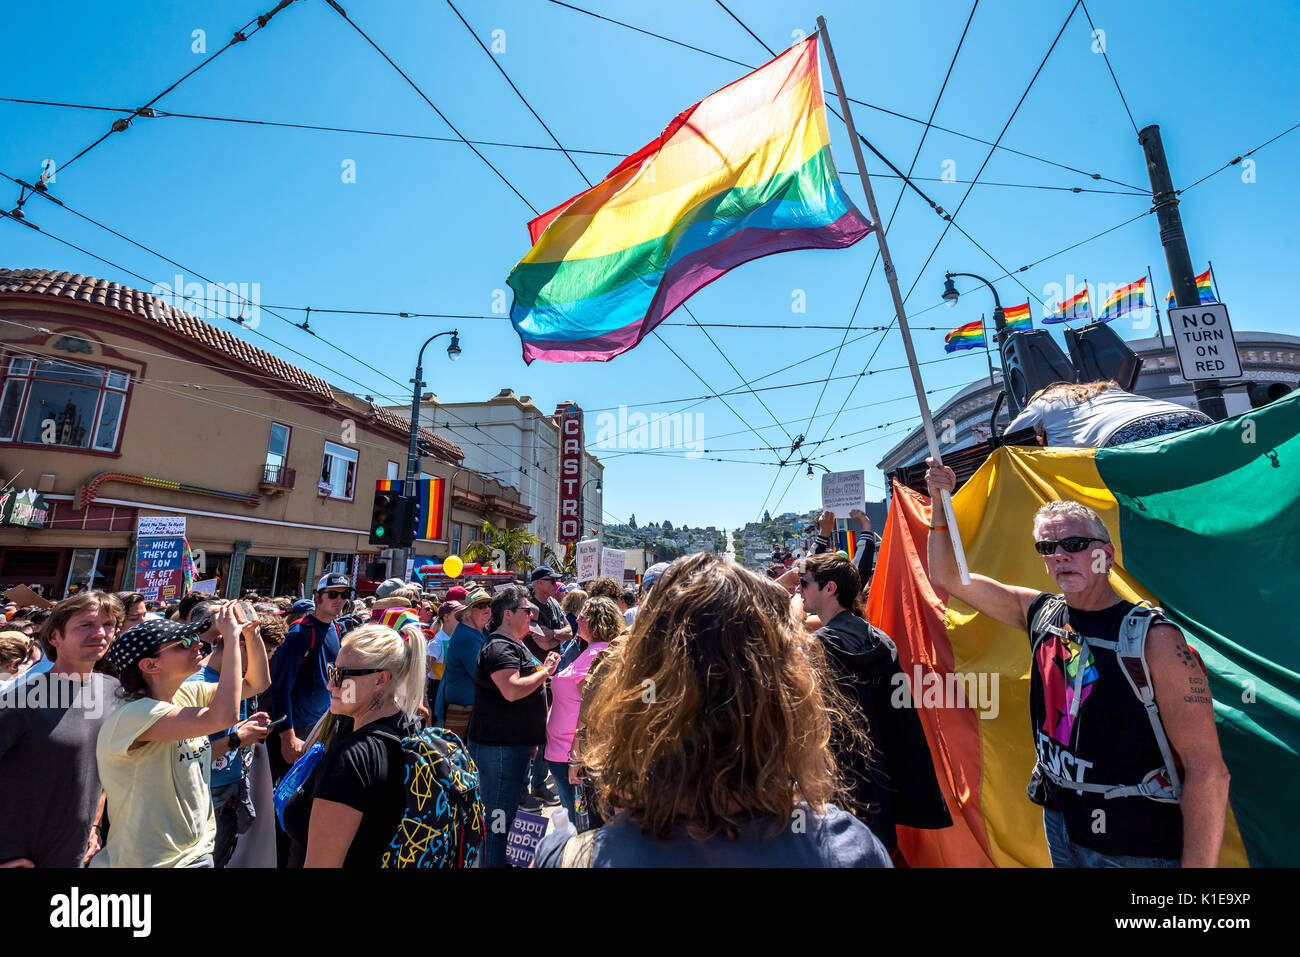 San Francisco, USA. 26th August, 2017, the No Hate rally and protest march in San Francisco. The group gathered at Harvey Milk Plaza in San Francisco's Castro district for a rally before marching down Market Street to San Francisco City Hall. Originally planned as one of several counter protests to a previously planned demonstration by right wing group 'Patriot Prayer,' the counter protests in San Francisco still saw large turnouts in a show of support though the Patriot Prayer event was canceled the evening prior. Credit: Shelly Rivoli/Alamy Live News - Stock Image